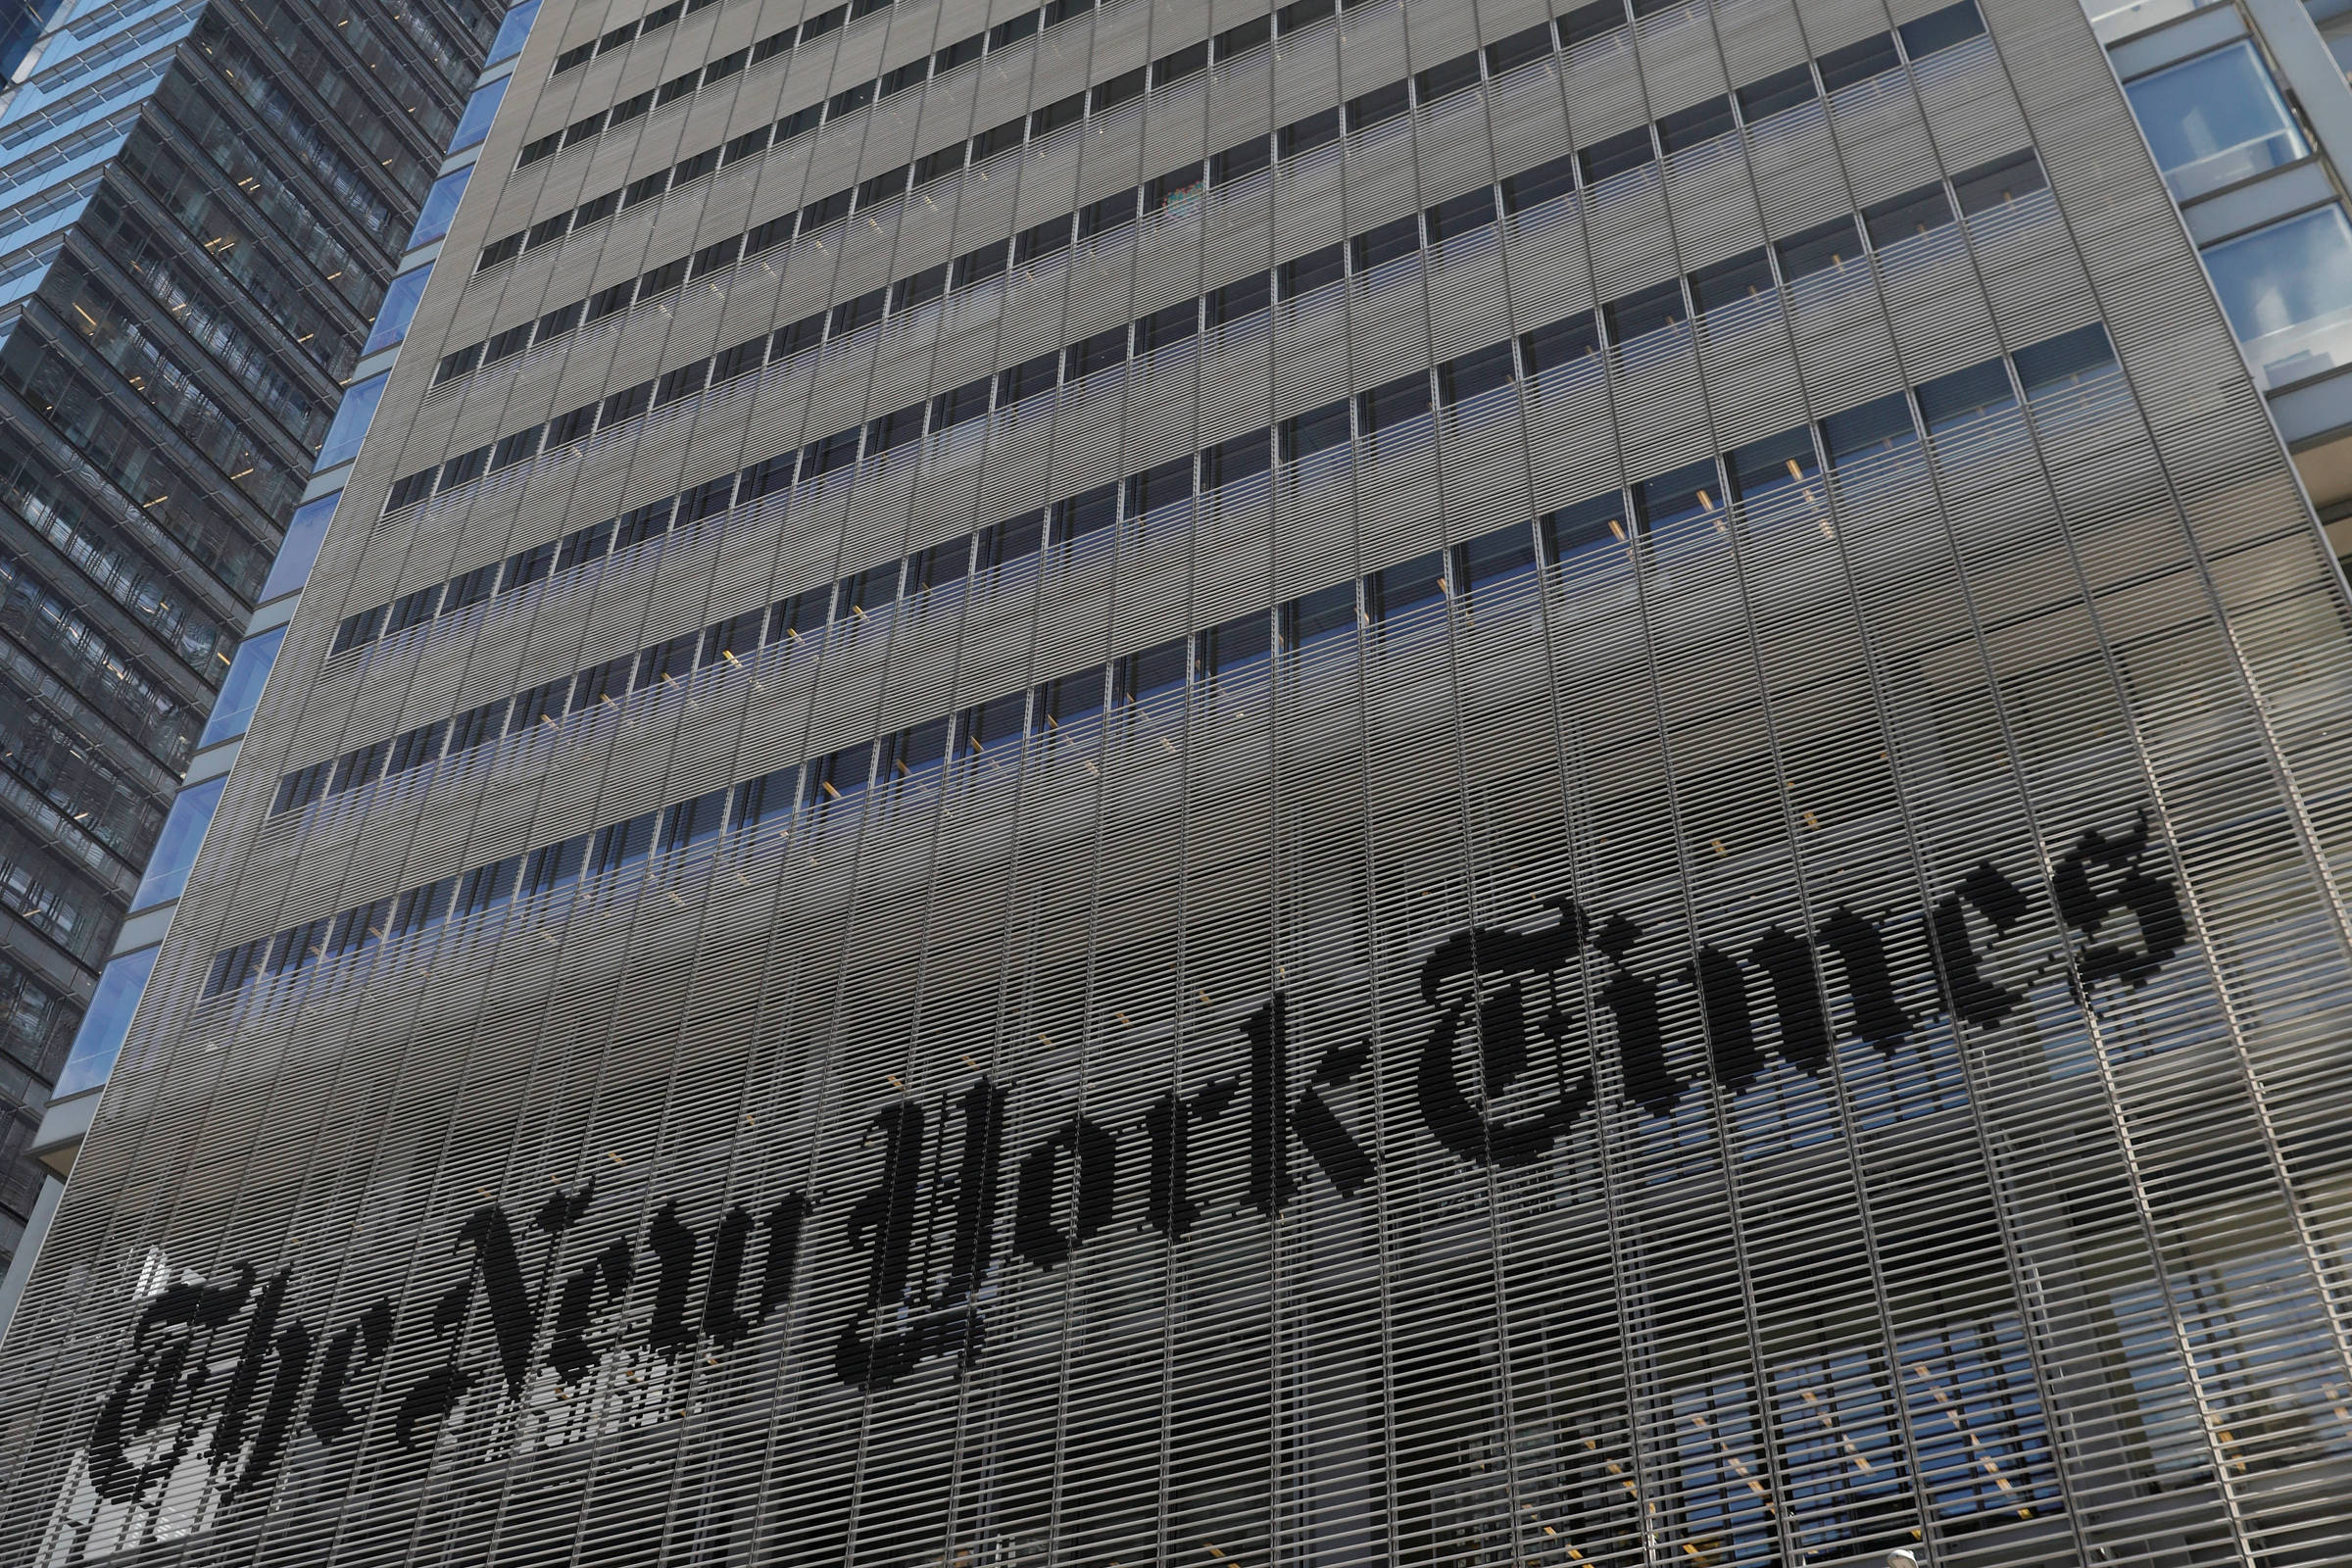 Podcast eleva receita do The New York Times com publicidade